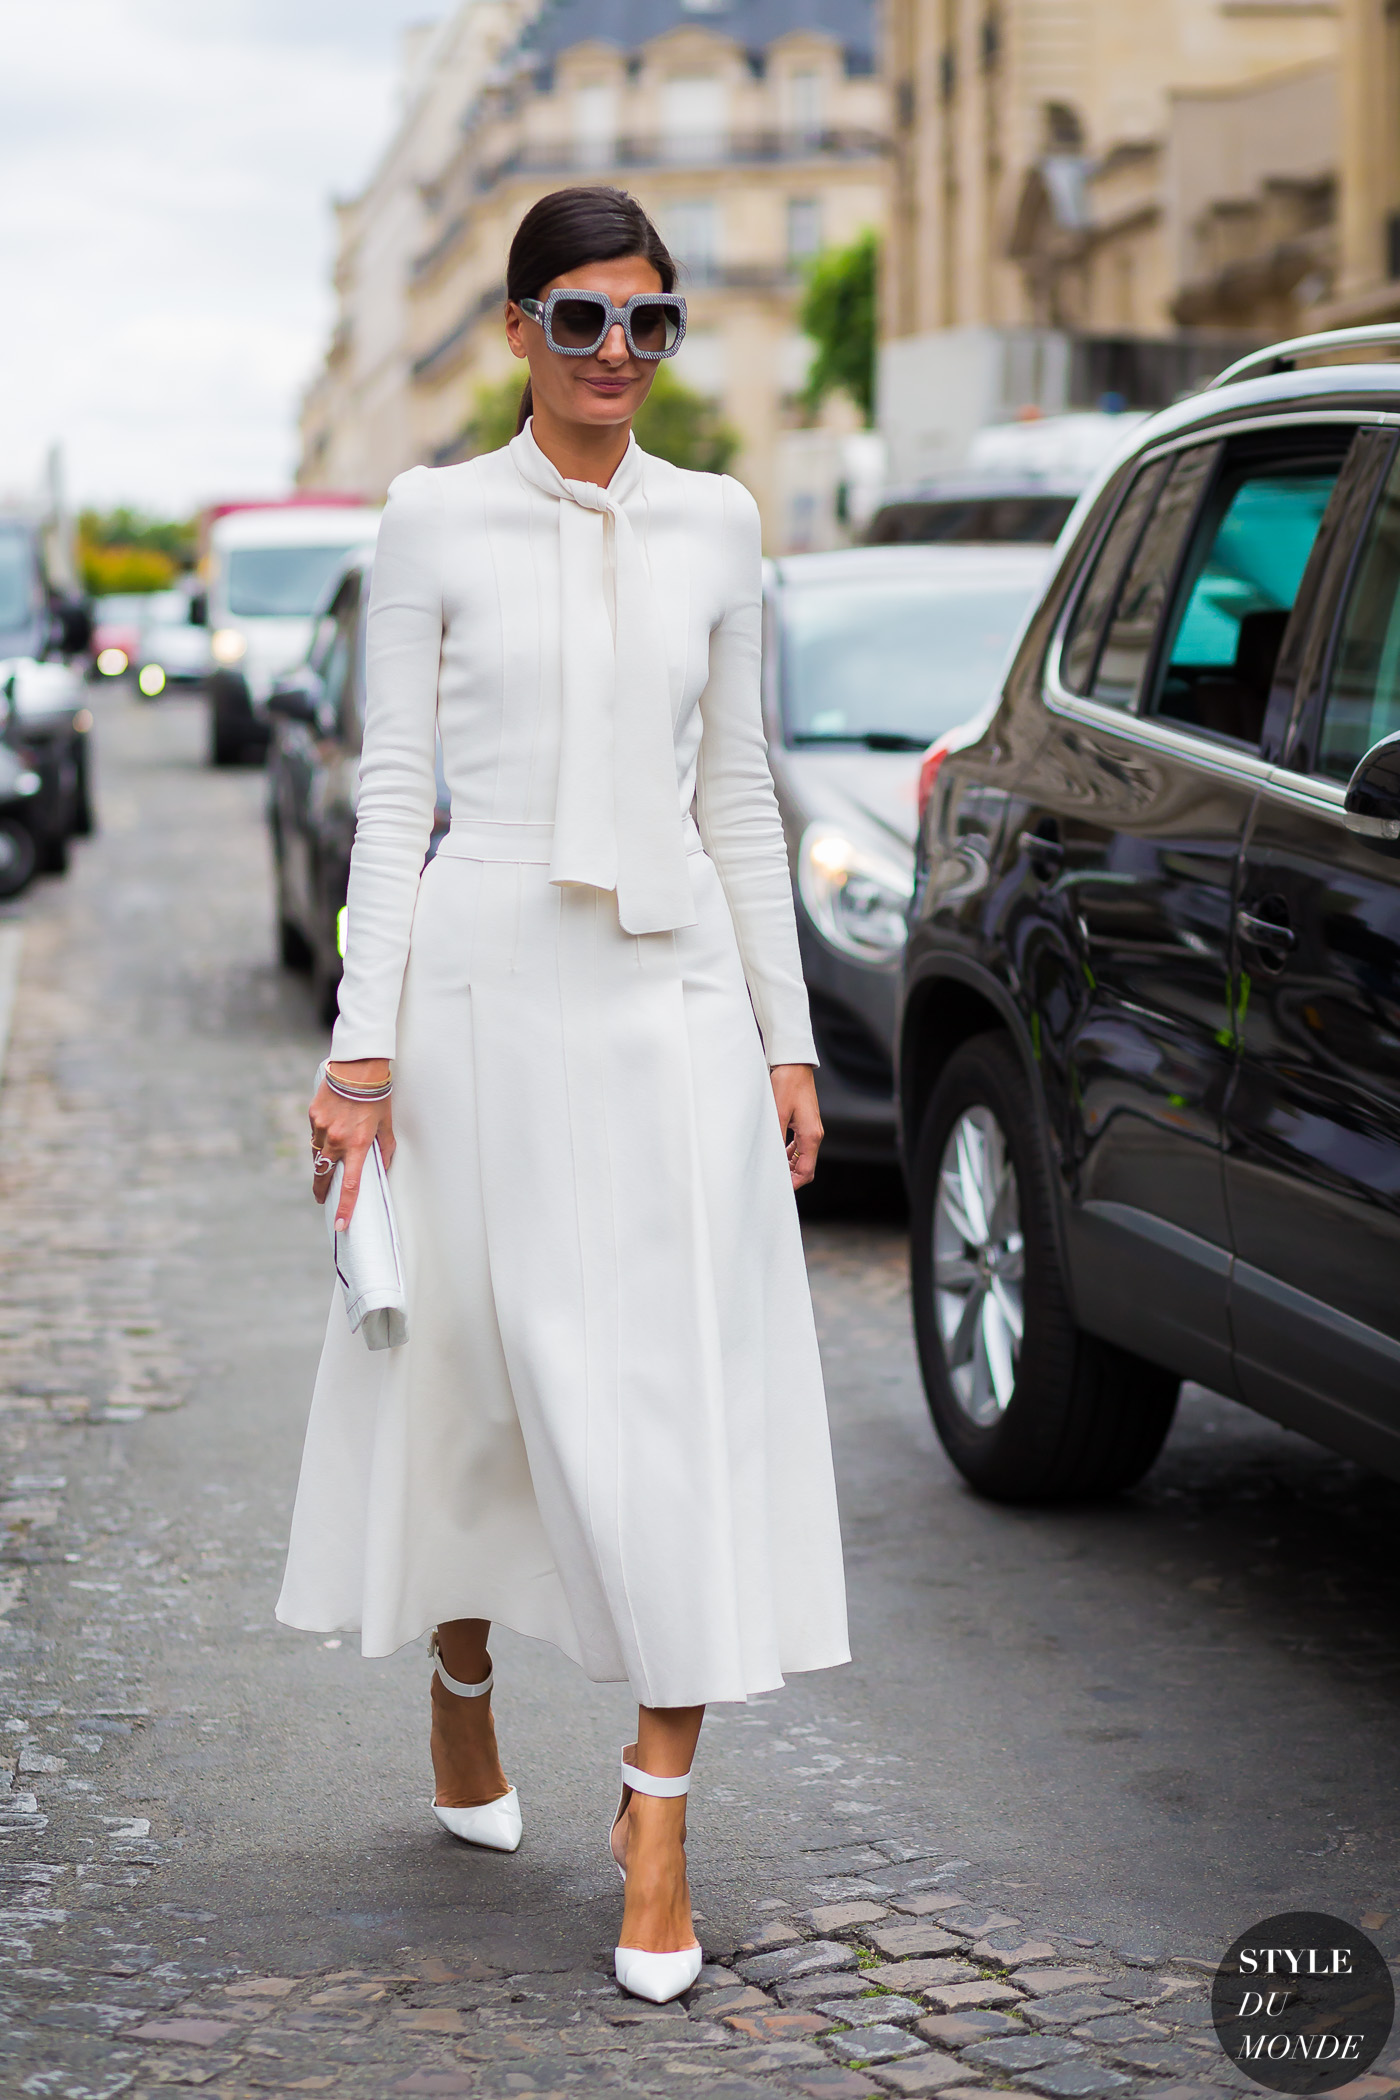 Giovanna Engelbert Giovanna Battaglia Street Style Street Fashion Streetsnaps by STYLEDUMONDE Street Style Fashion Photography